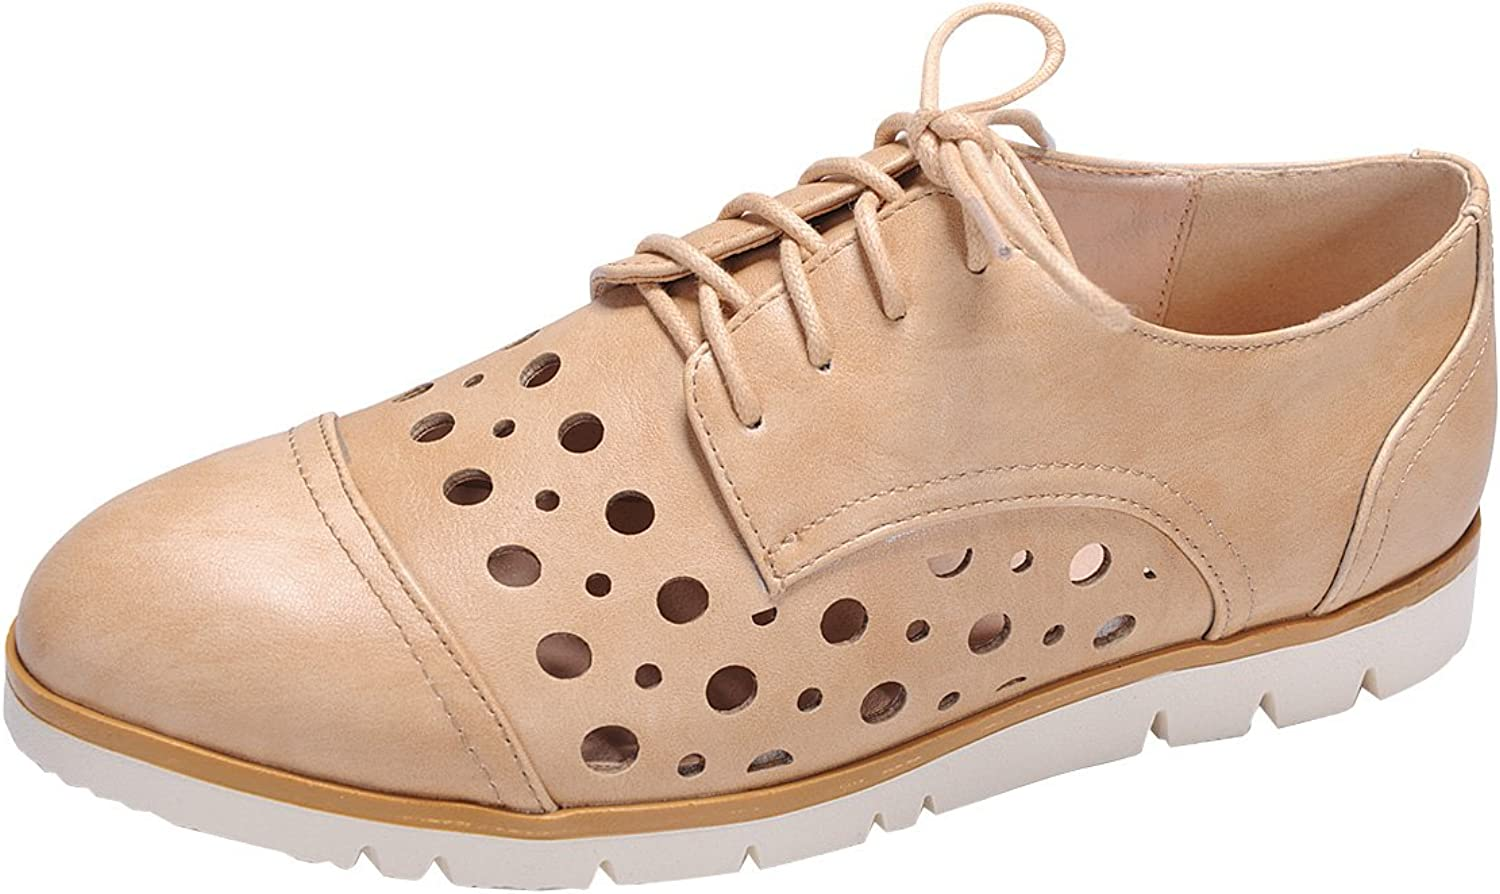 Nature Breeze Women's Perforated Laser Cut Outs Flatform Lace-Up Oxford shoes